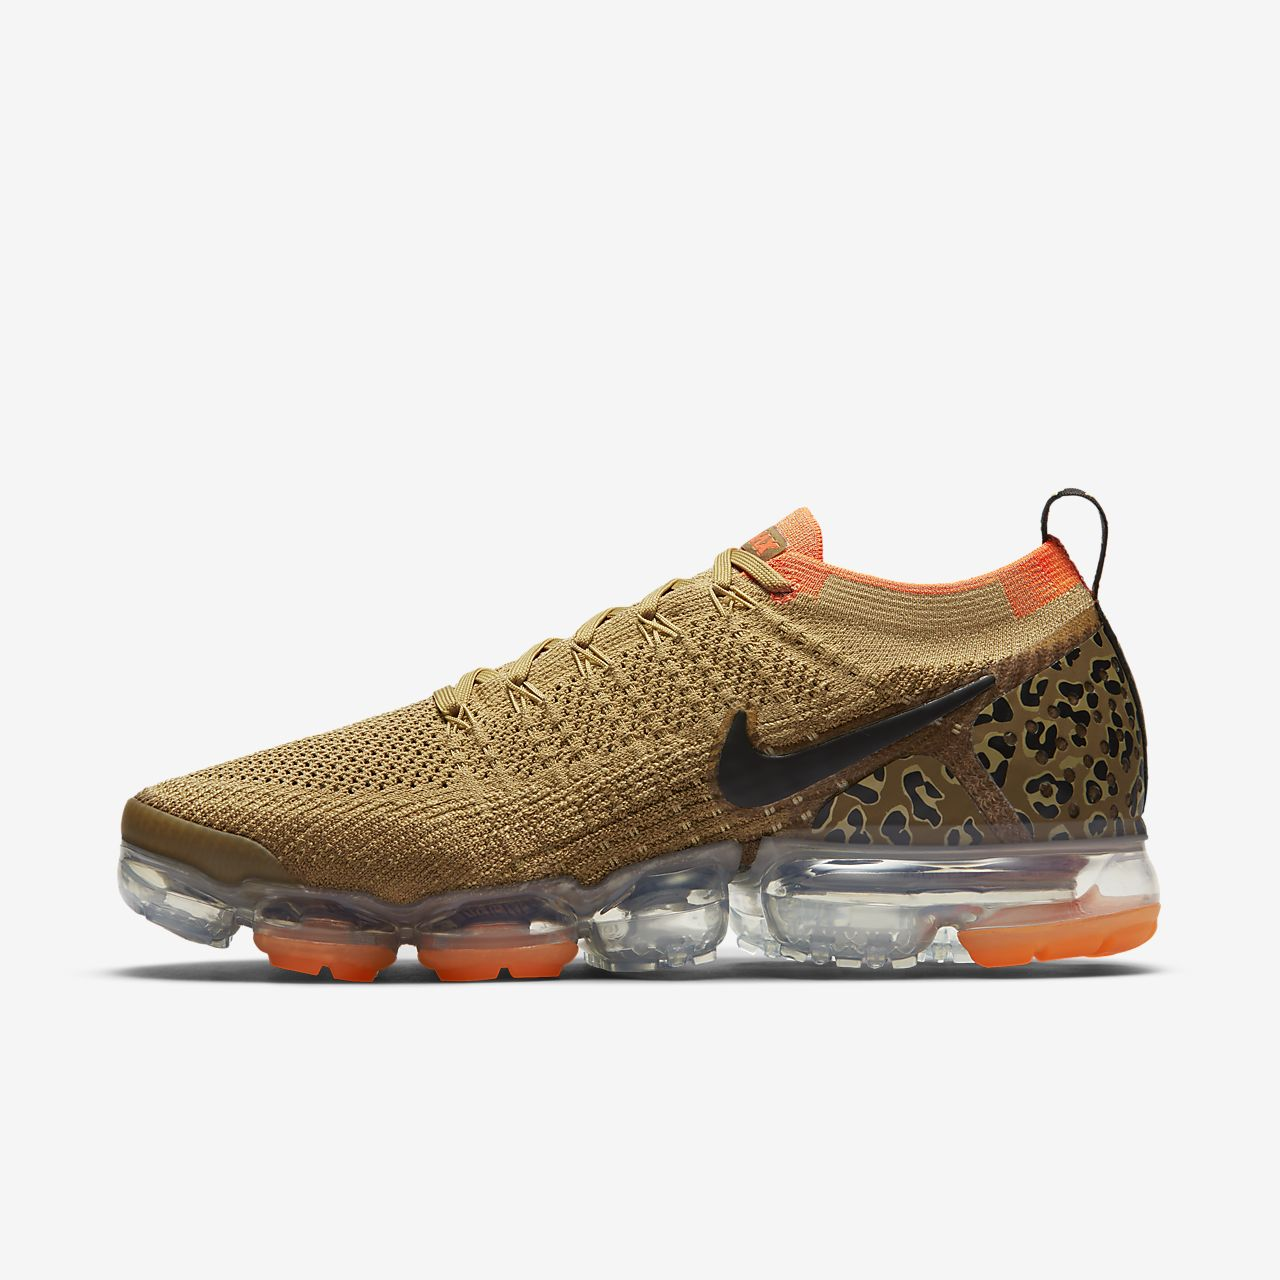 hot sale online a2074 acc39 ... Chaussure Nike Air VaporMax Flyknit 2 Cheetah pour Homme